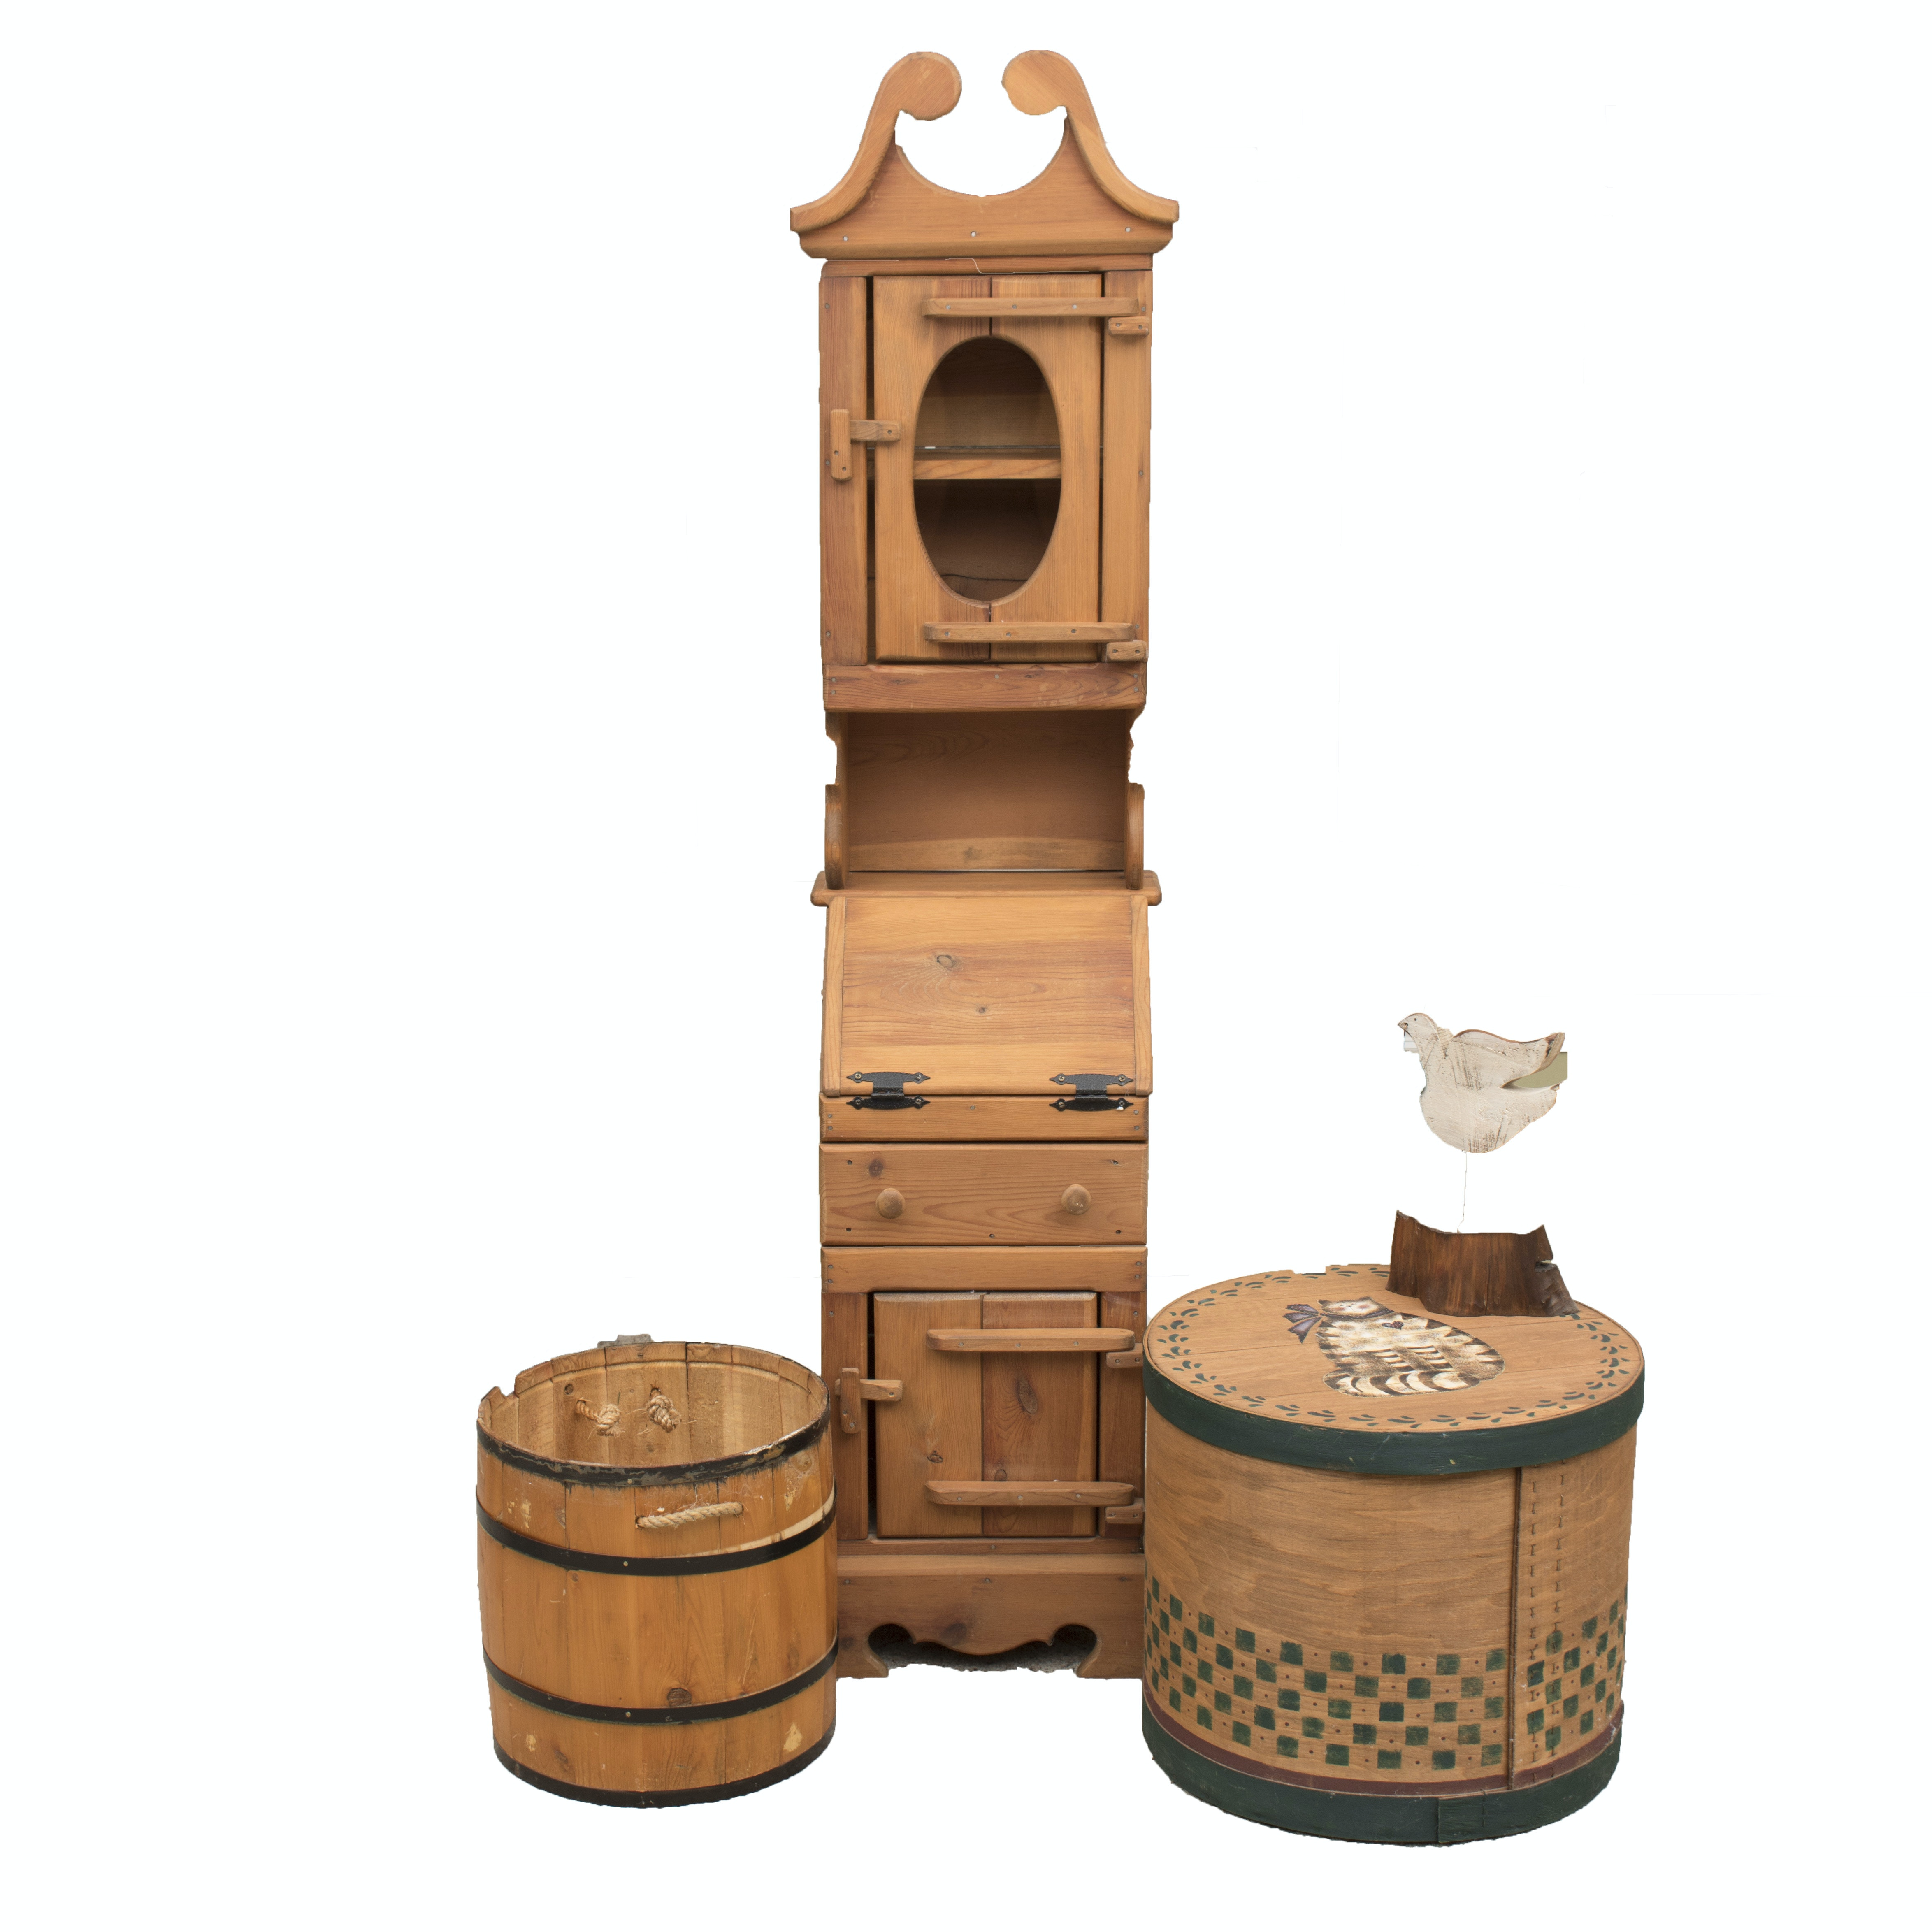 Country Style Cabinet, Barrel Containers and Decor